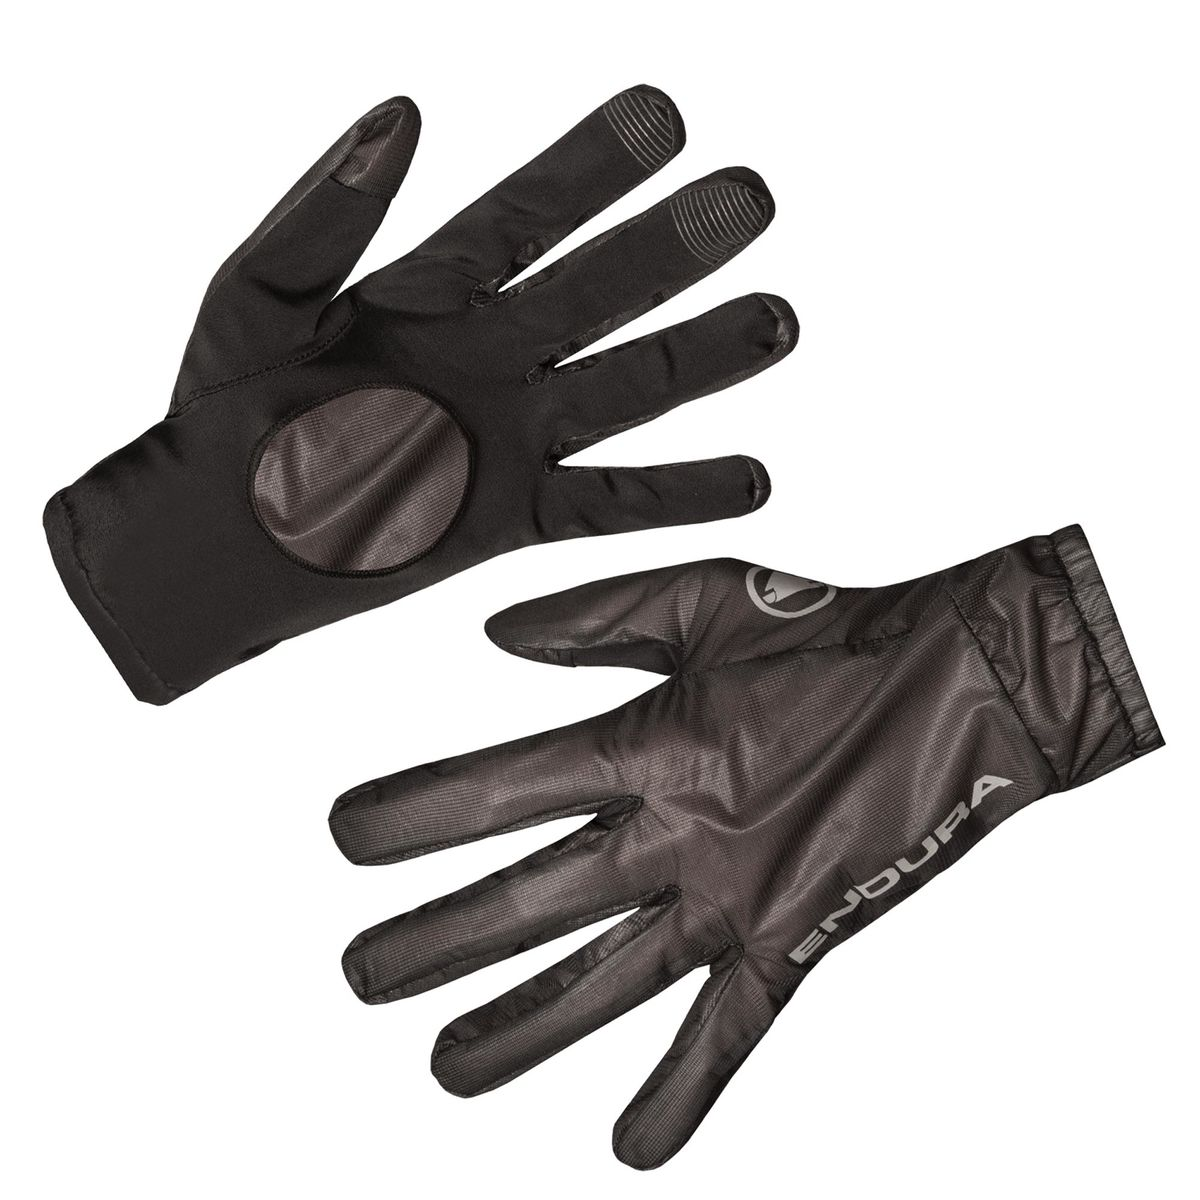 Adrenaline Shell gloves